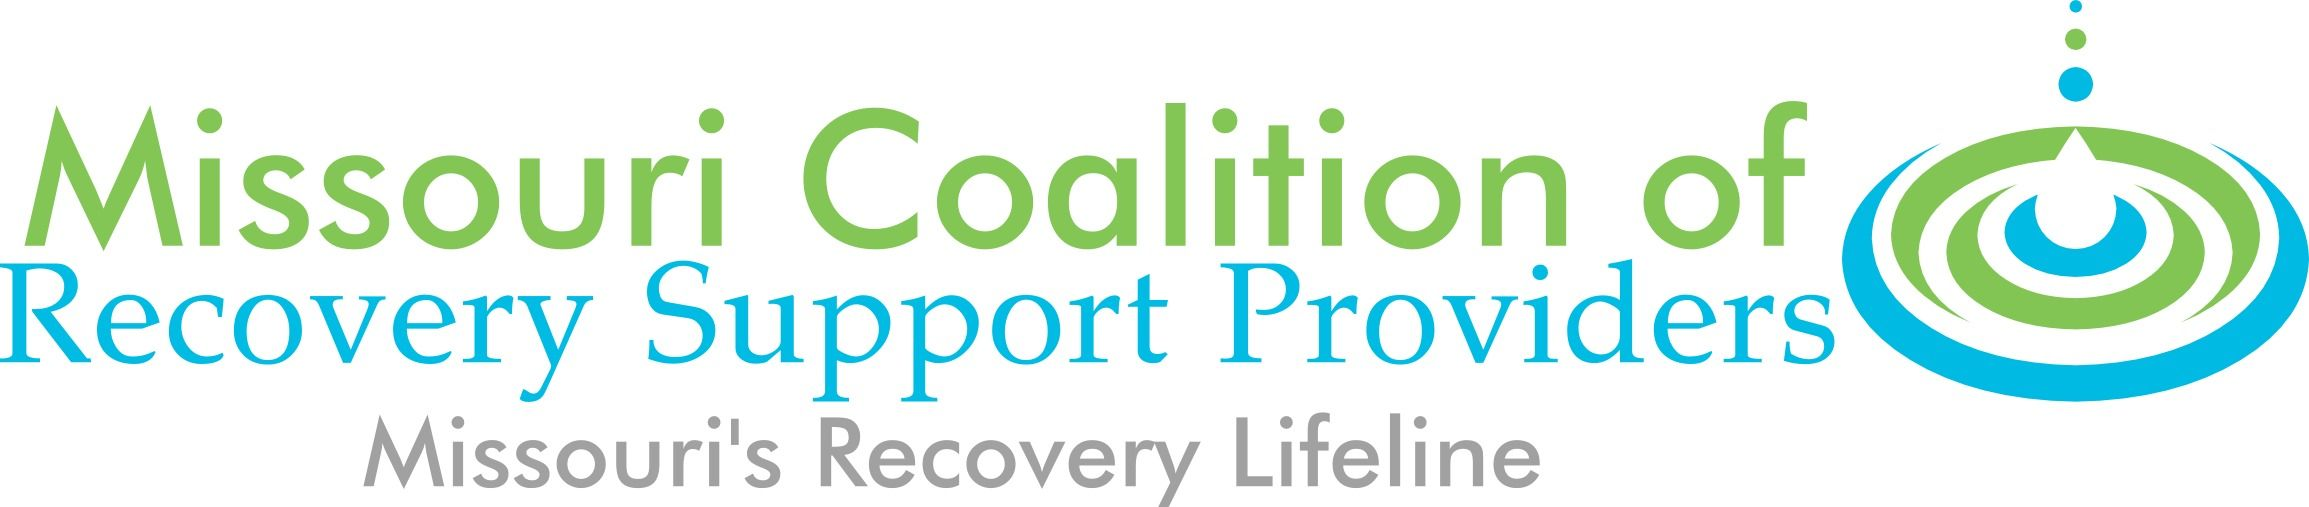 Mo Coalition of Recovery Support Providers